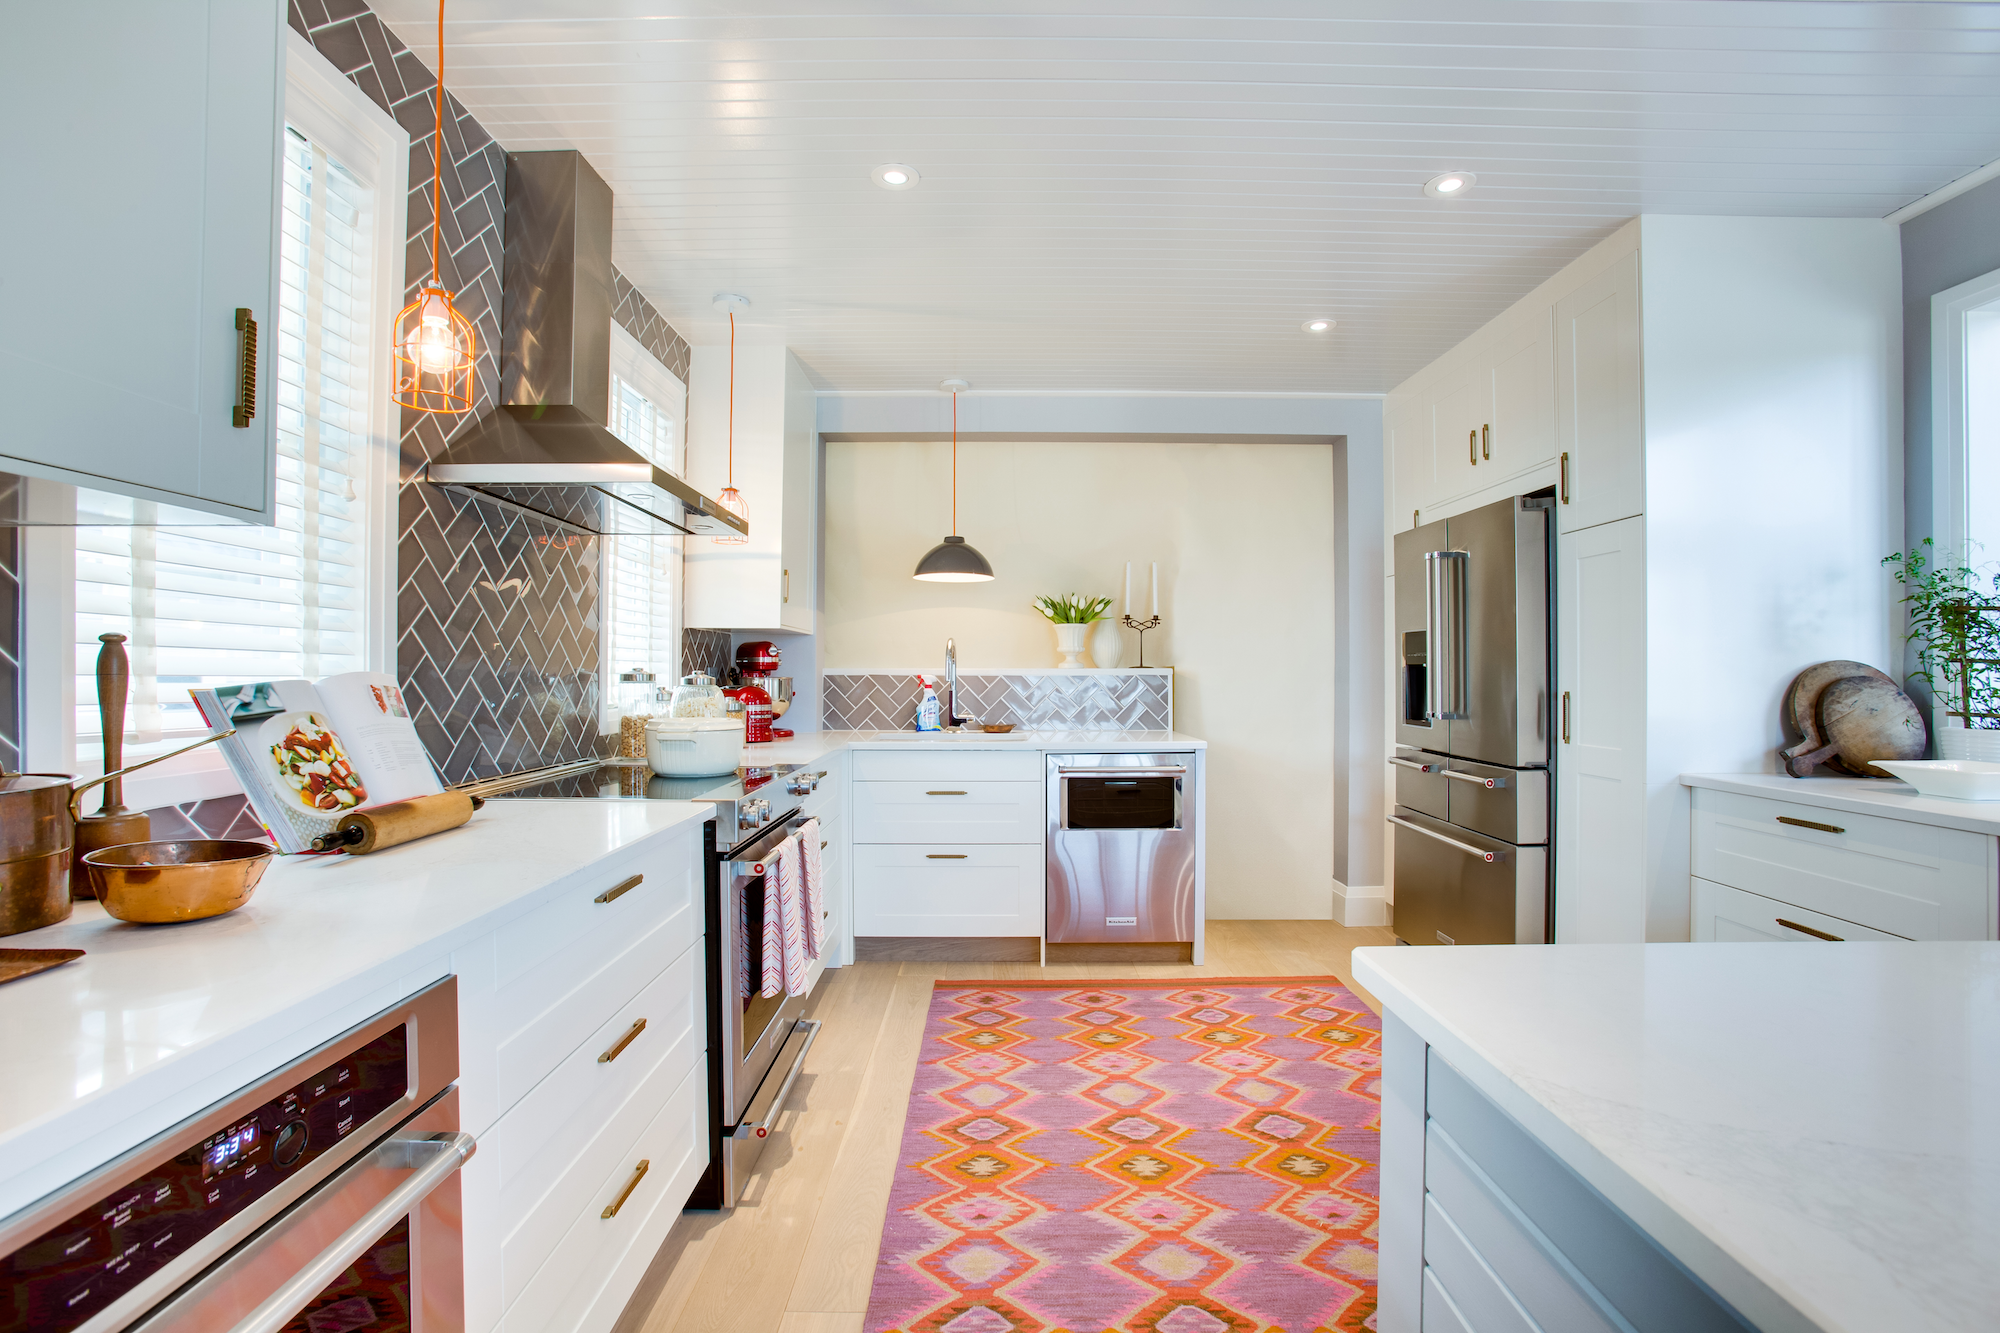 7 7 Tips: Designing a Kitchen by Sarah Richardson | Home To Win Full ...